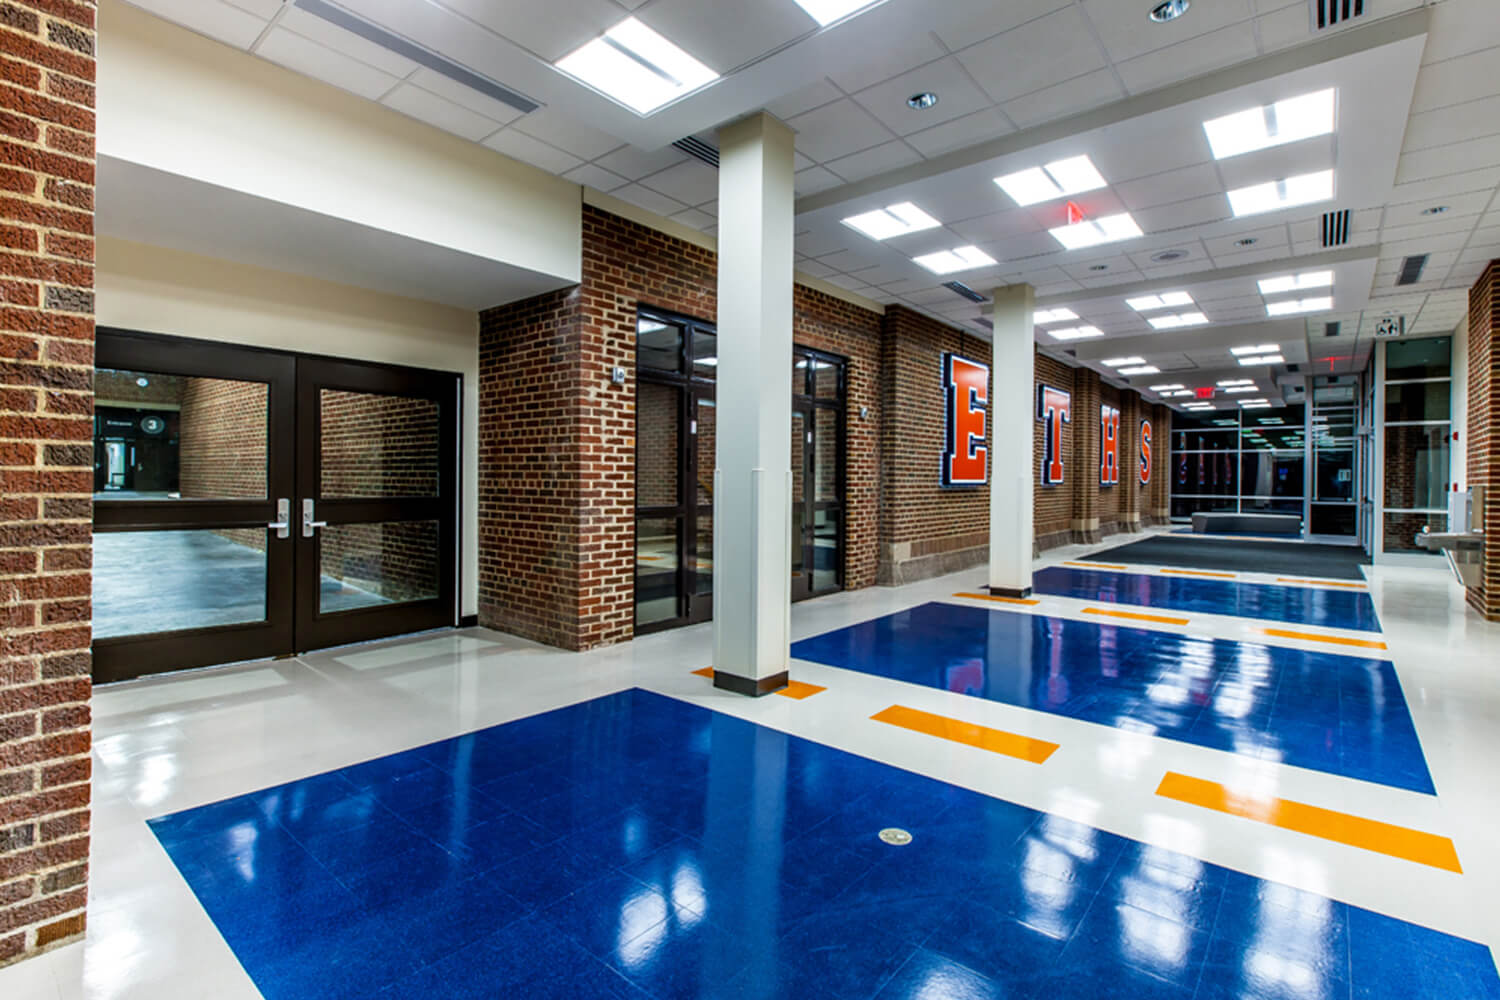 Evanston Township High School – Entry & Renovation Project interior 1